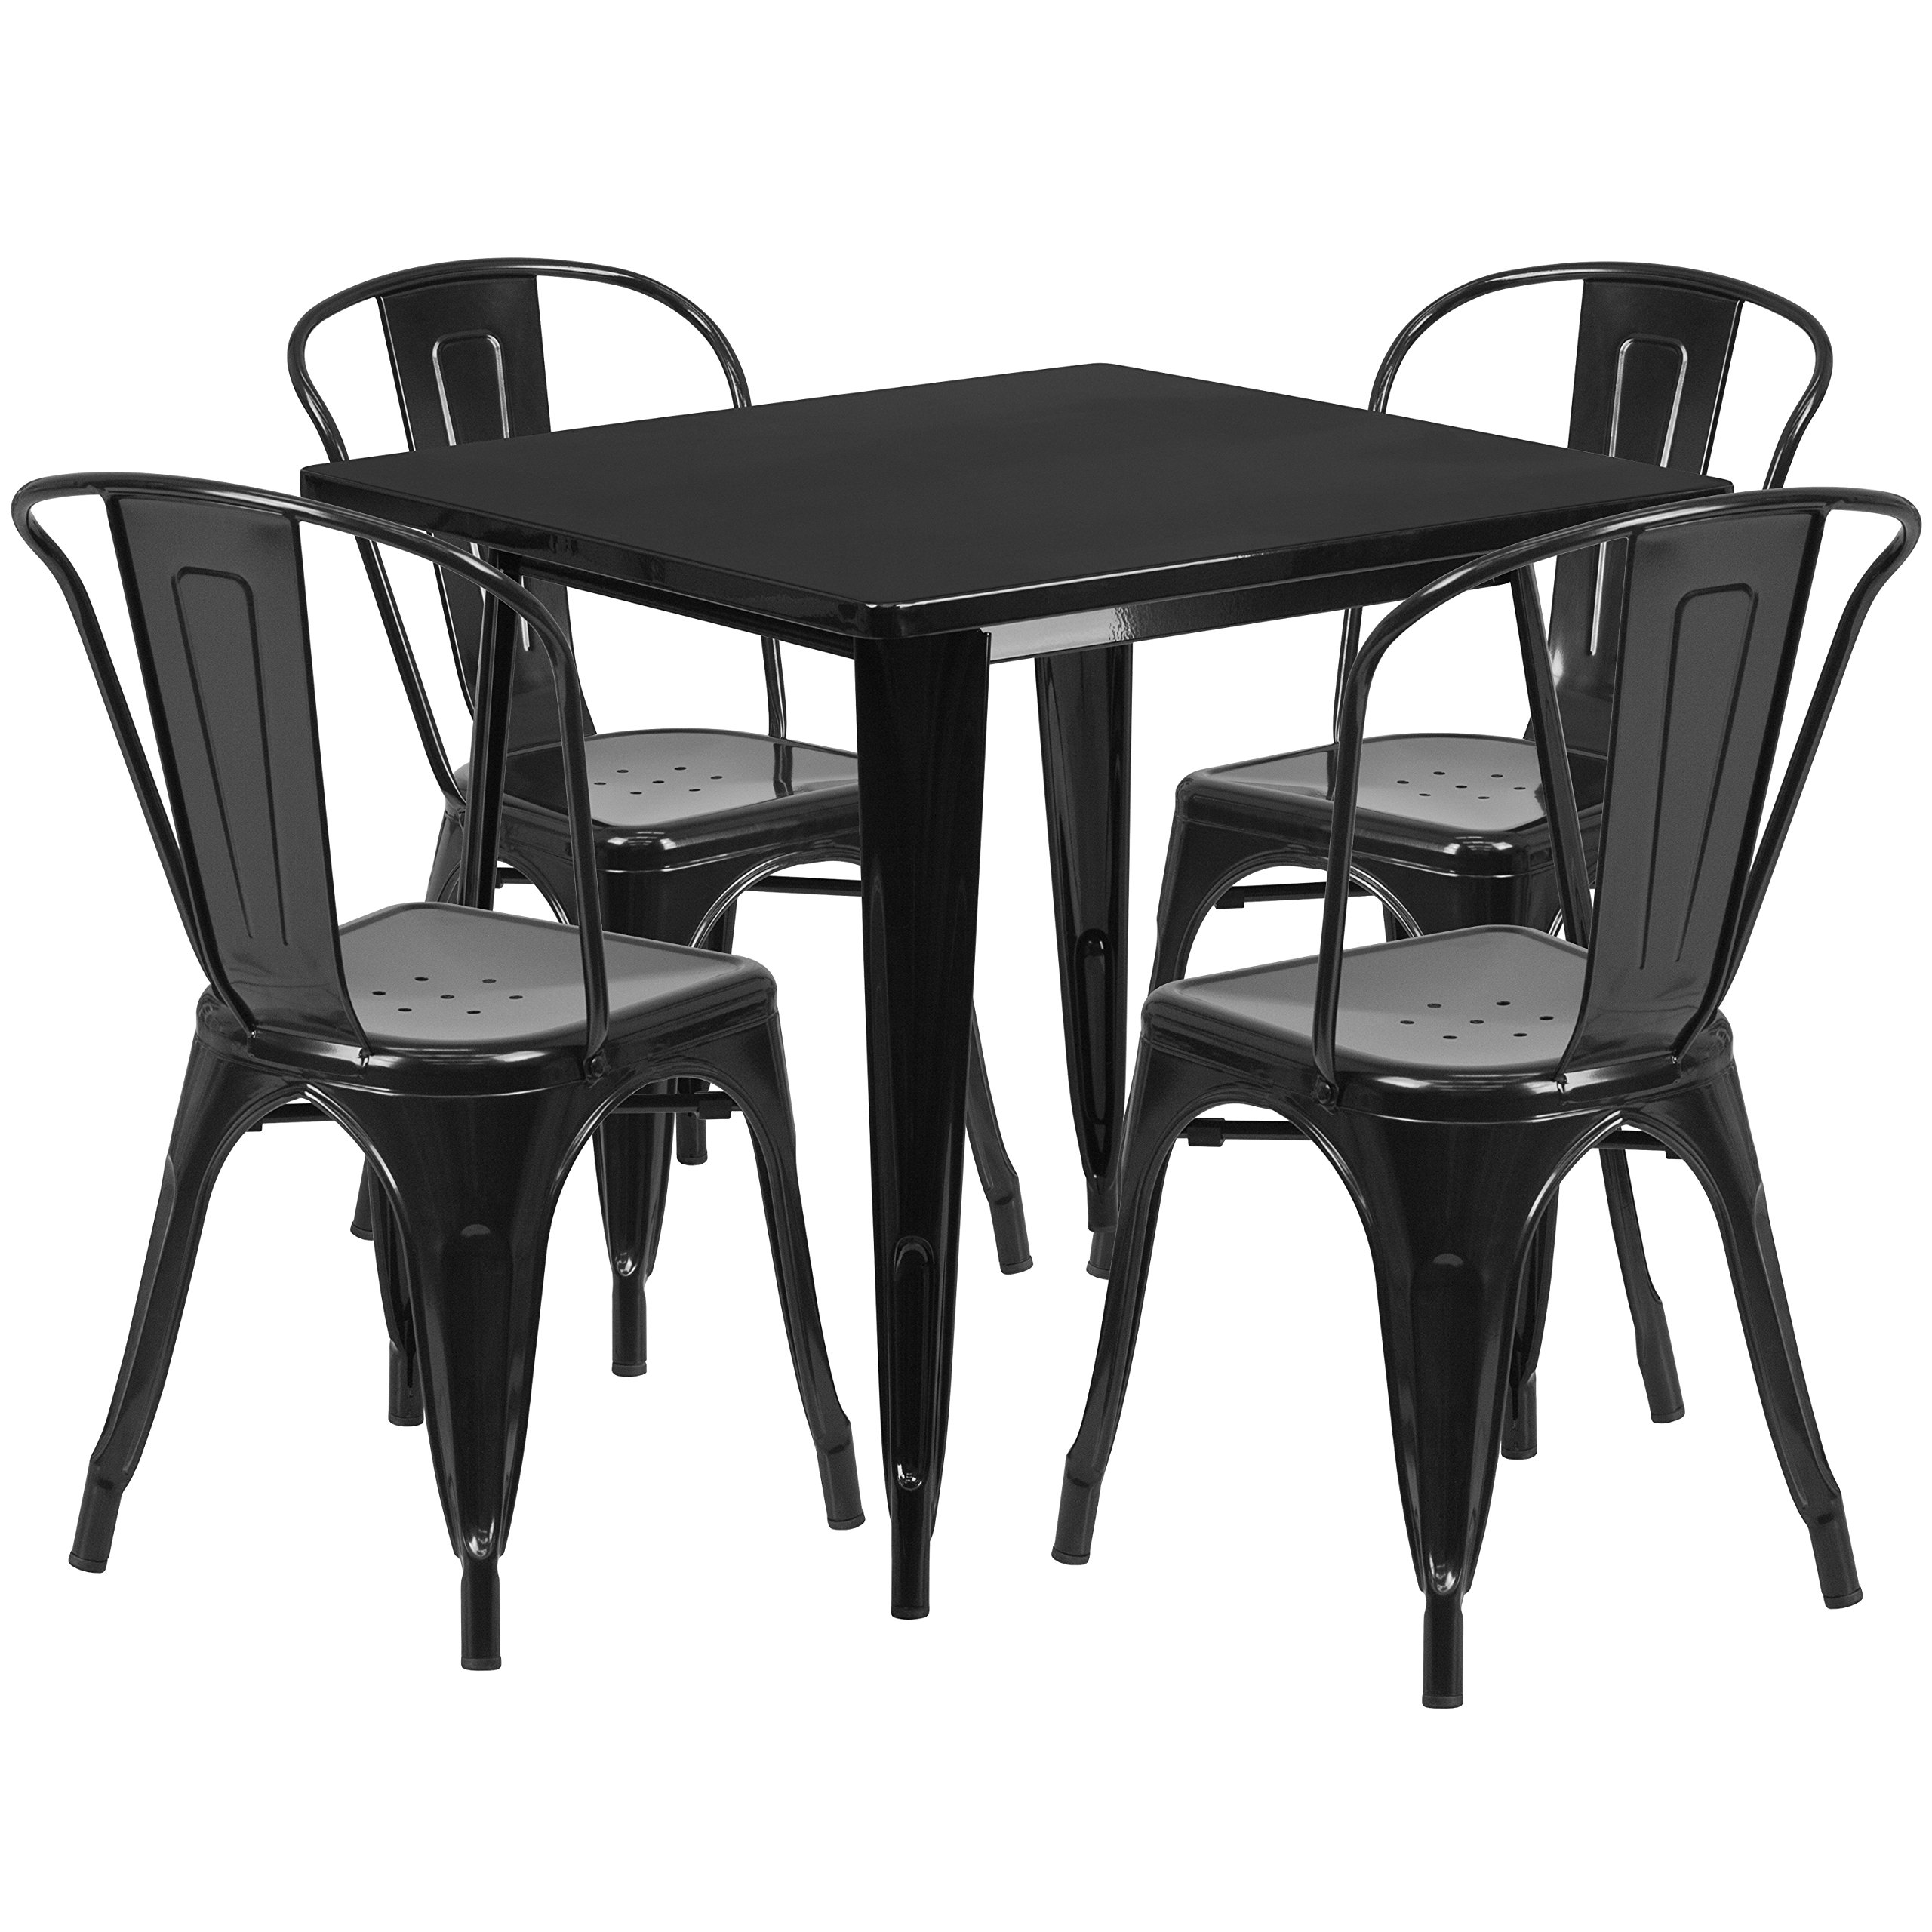 Flash Furniture 31.5'' Square Black Metal Indoor-Outdoor Table Set with 4 Stack Chairs